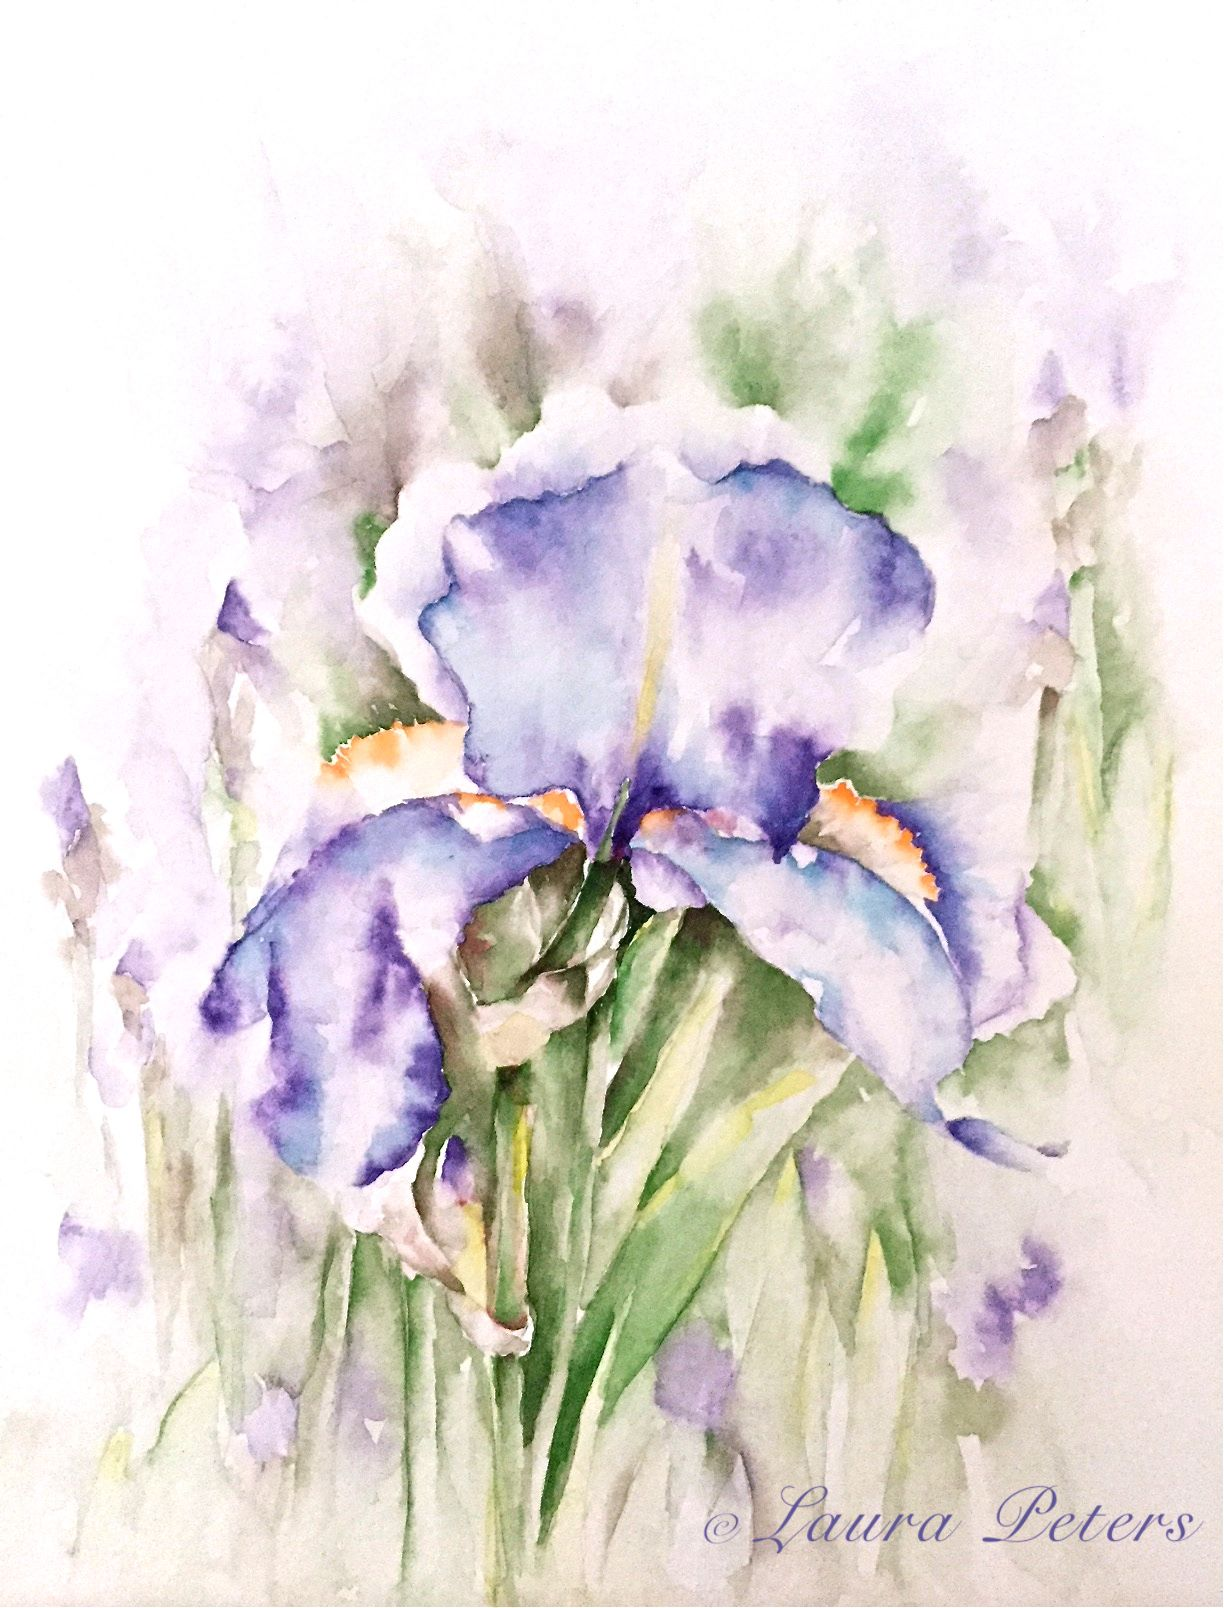 Watercolor Iris By Laura Peters Join Us At Antonella Art Studio